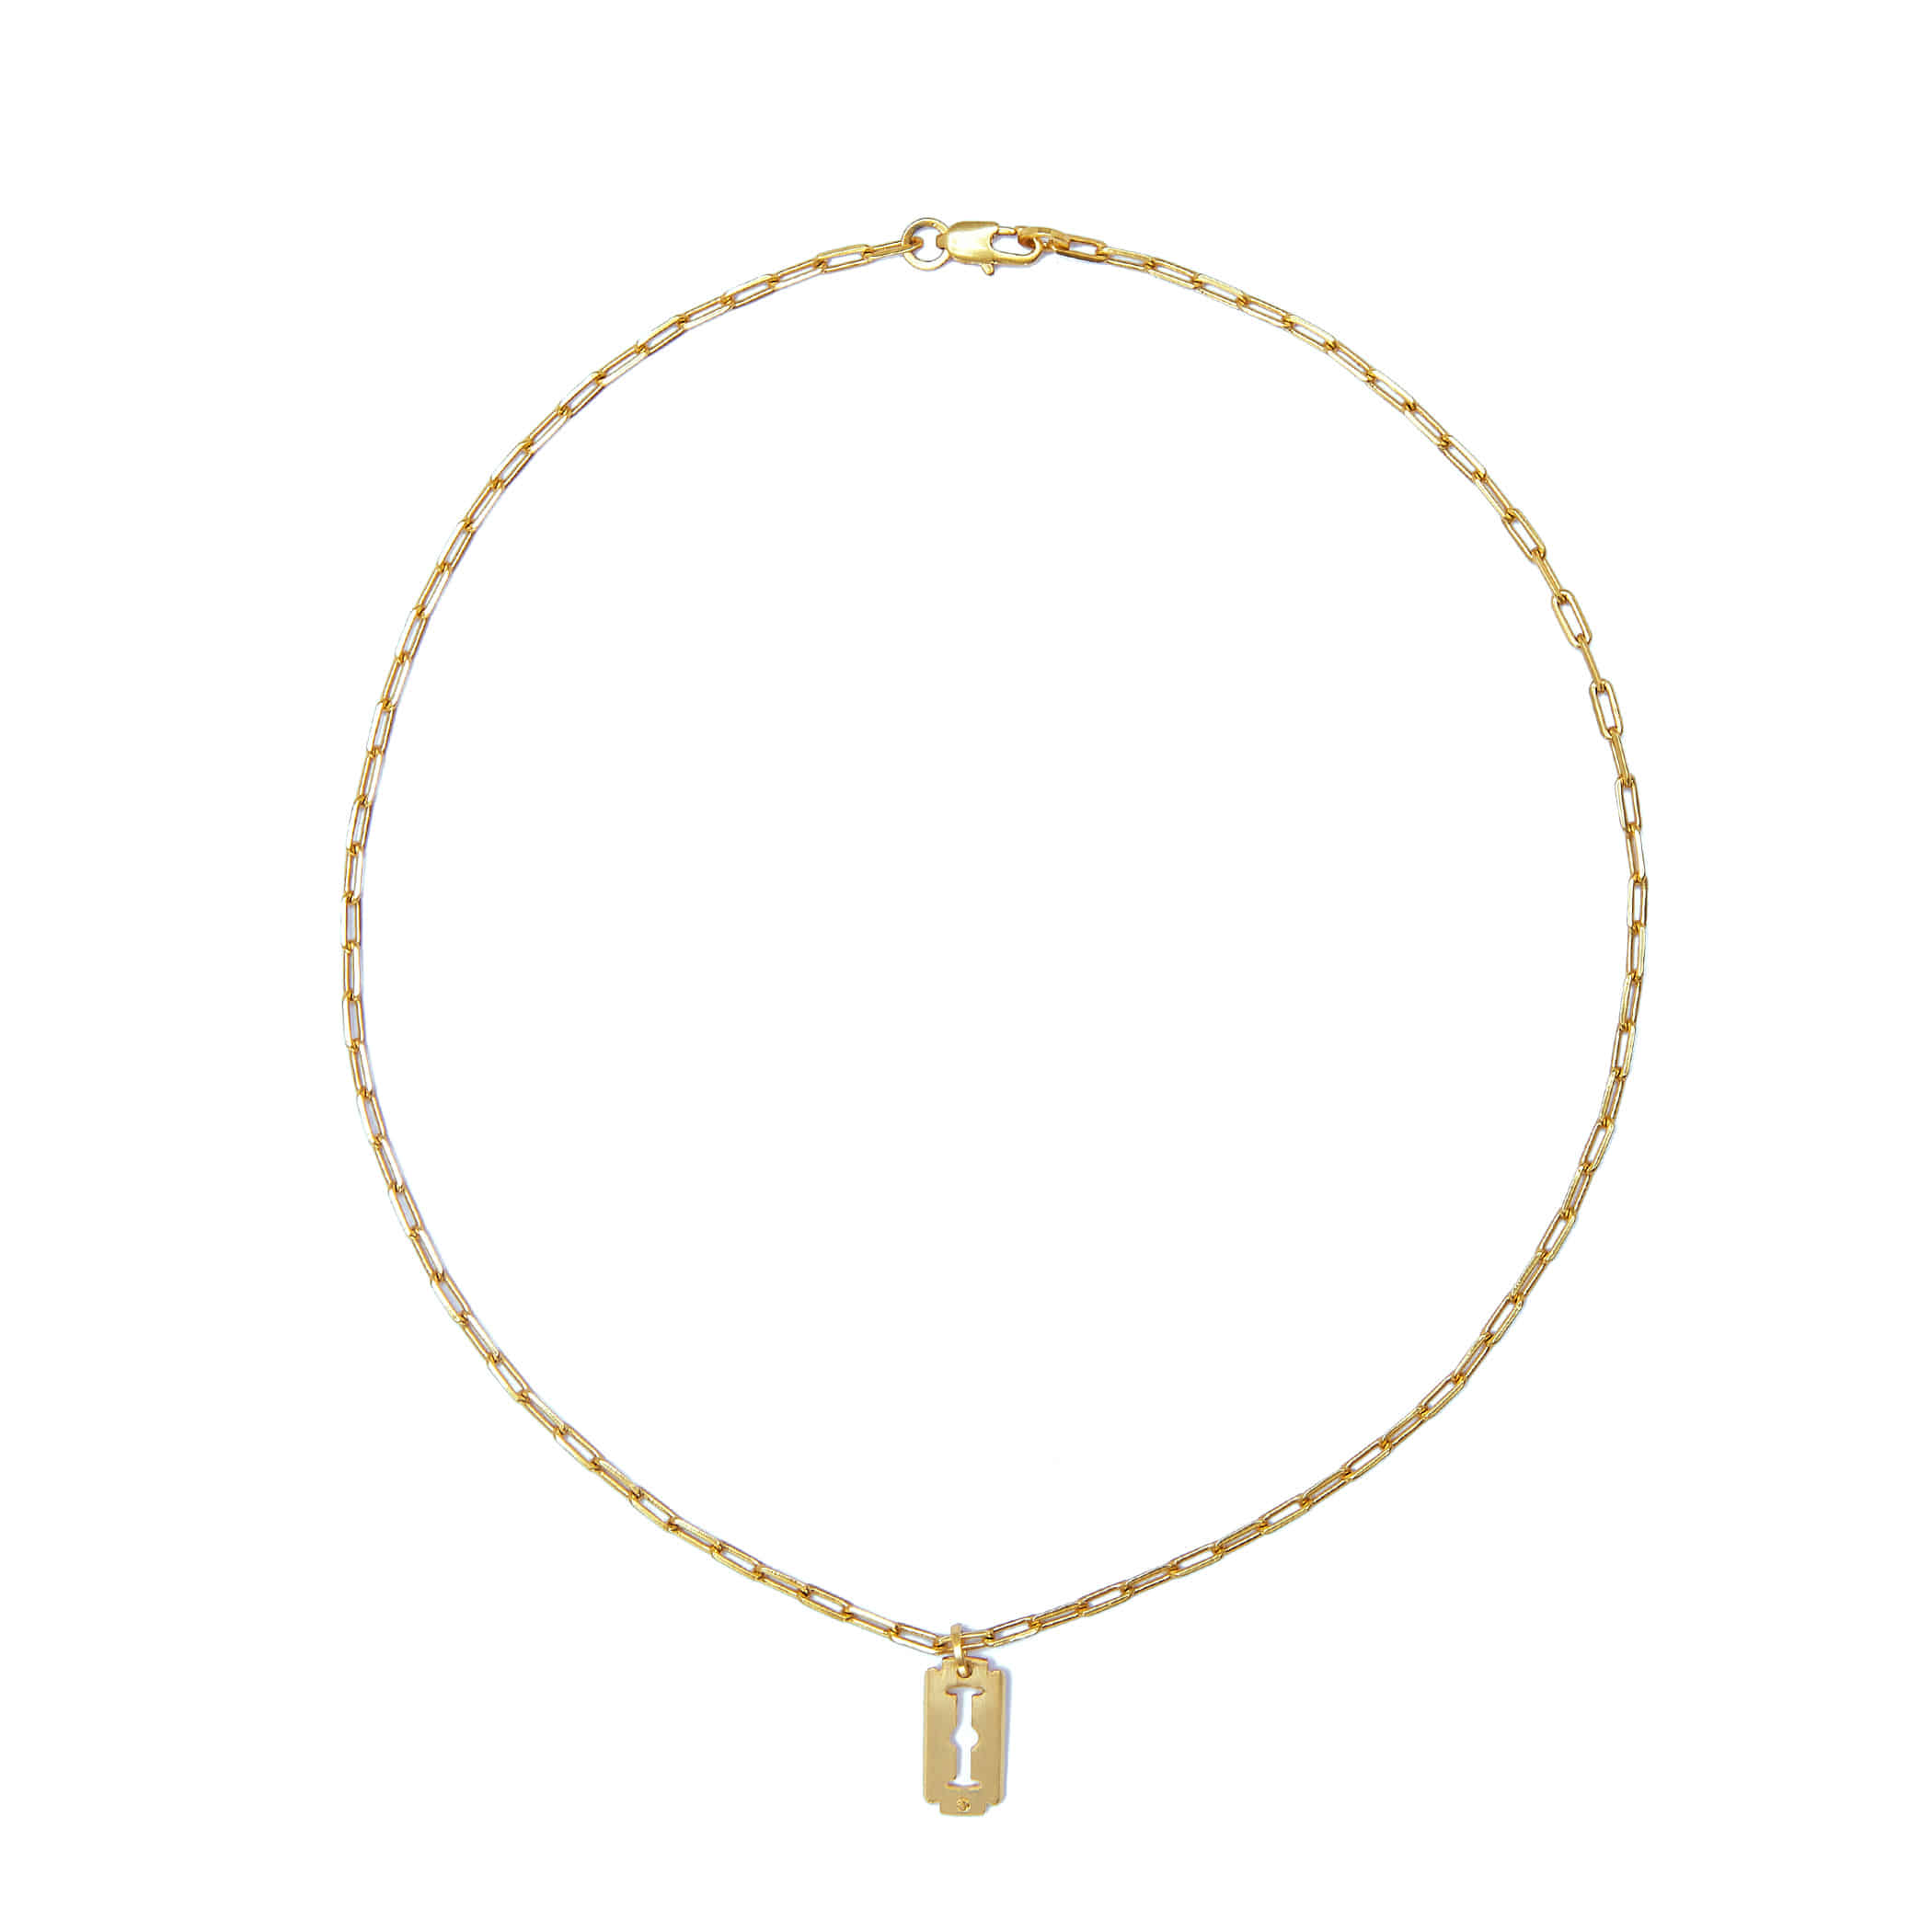 P.R.N (Piccolo Razor Necklace) Gold